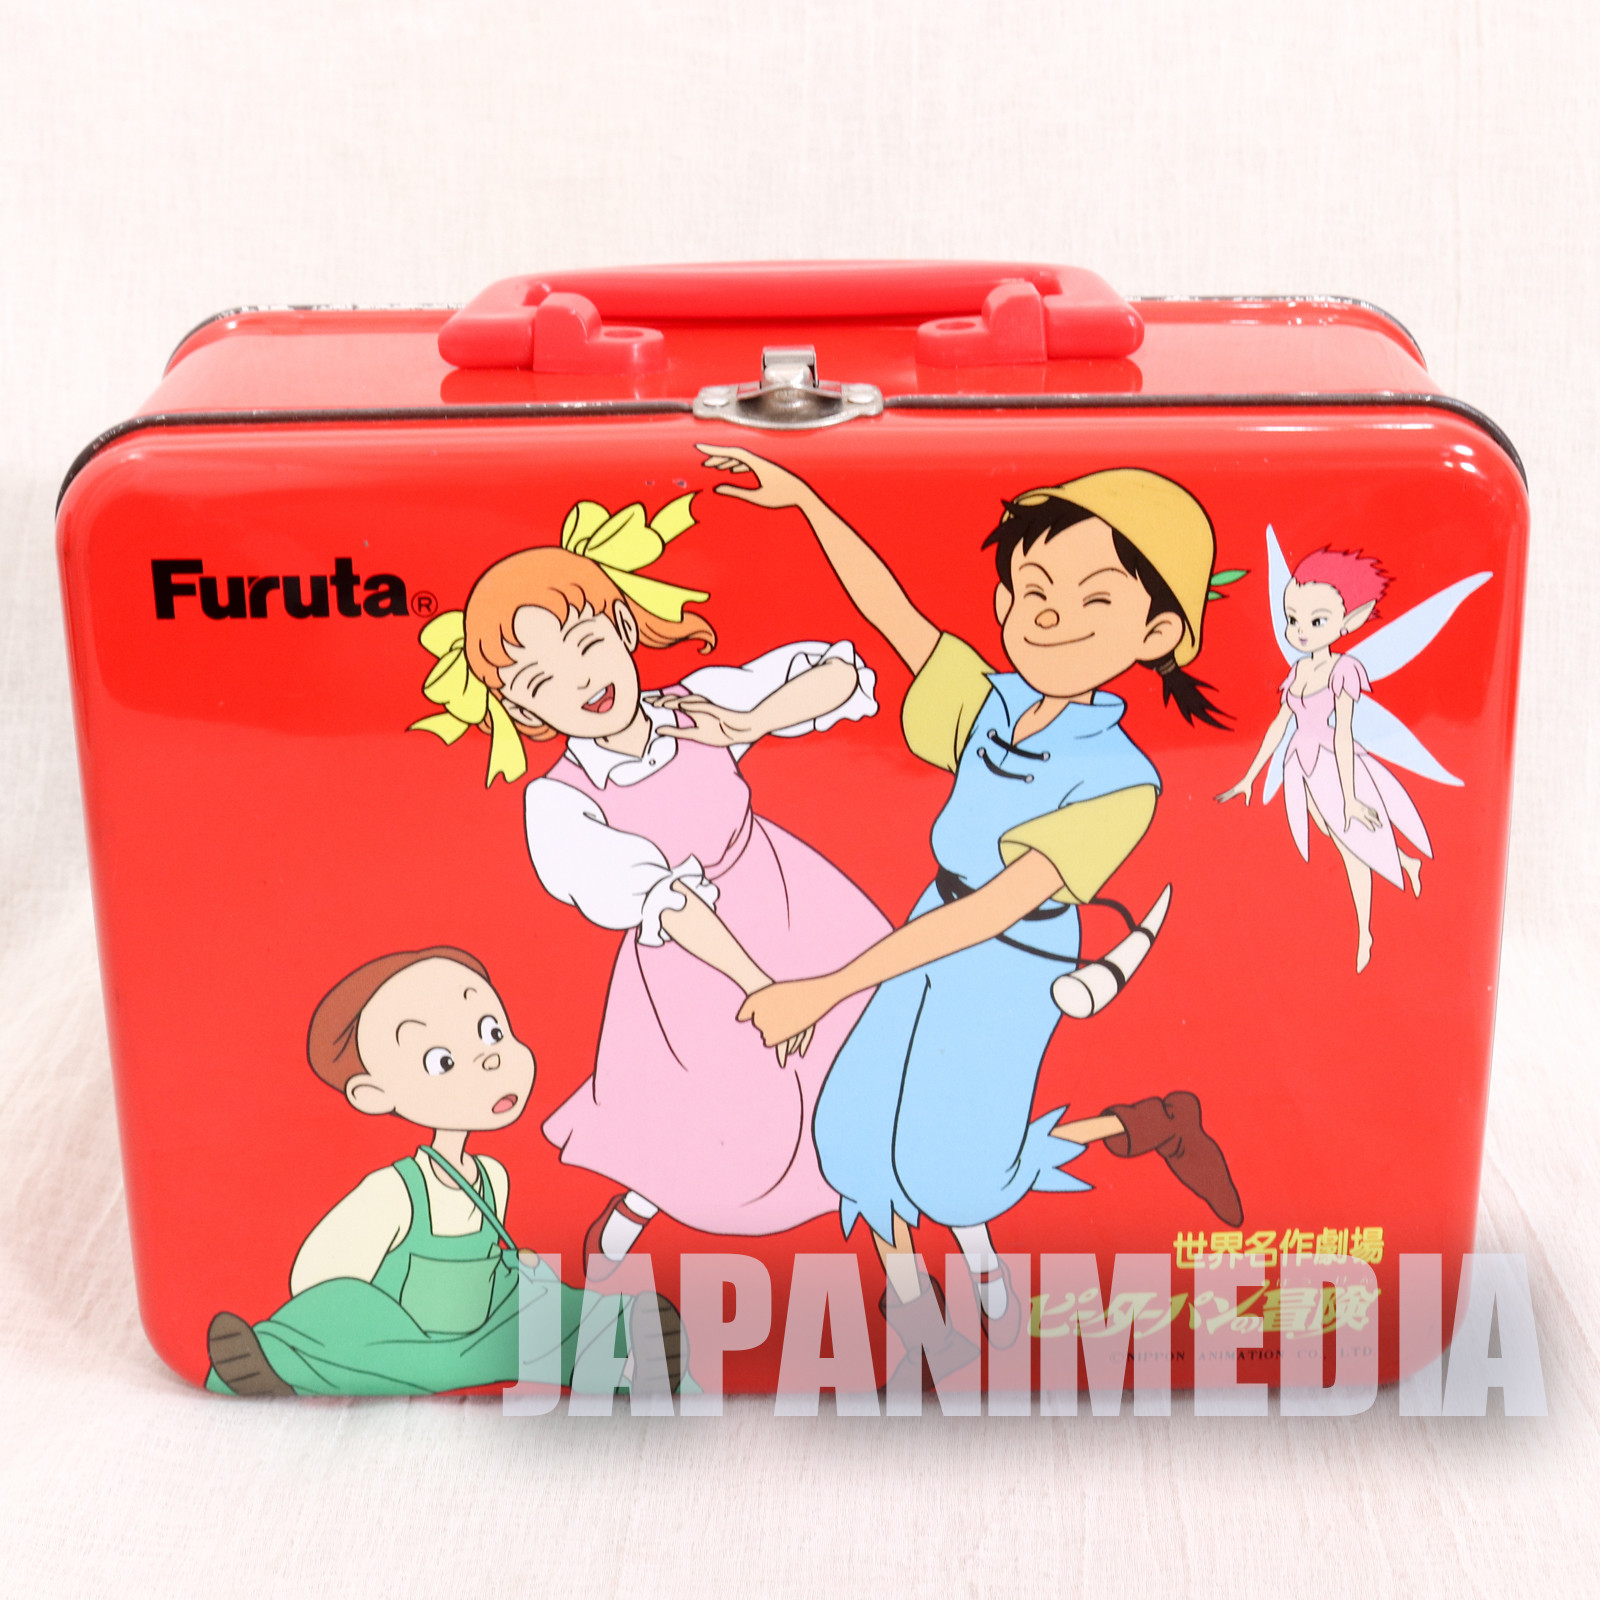 Adventures of Peter Pan World Masterpiece Theater Metallic Can Box JAPAN ANIME